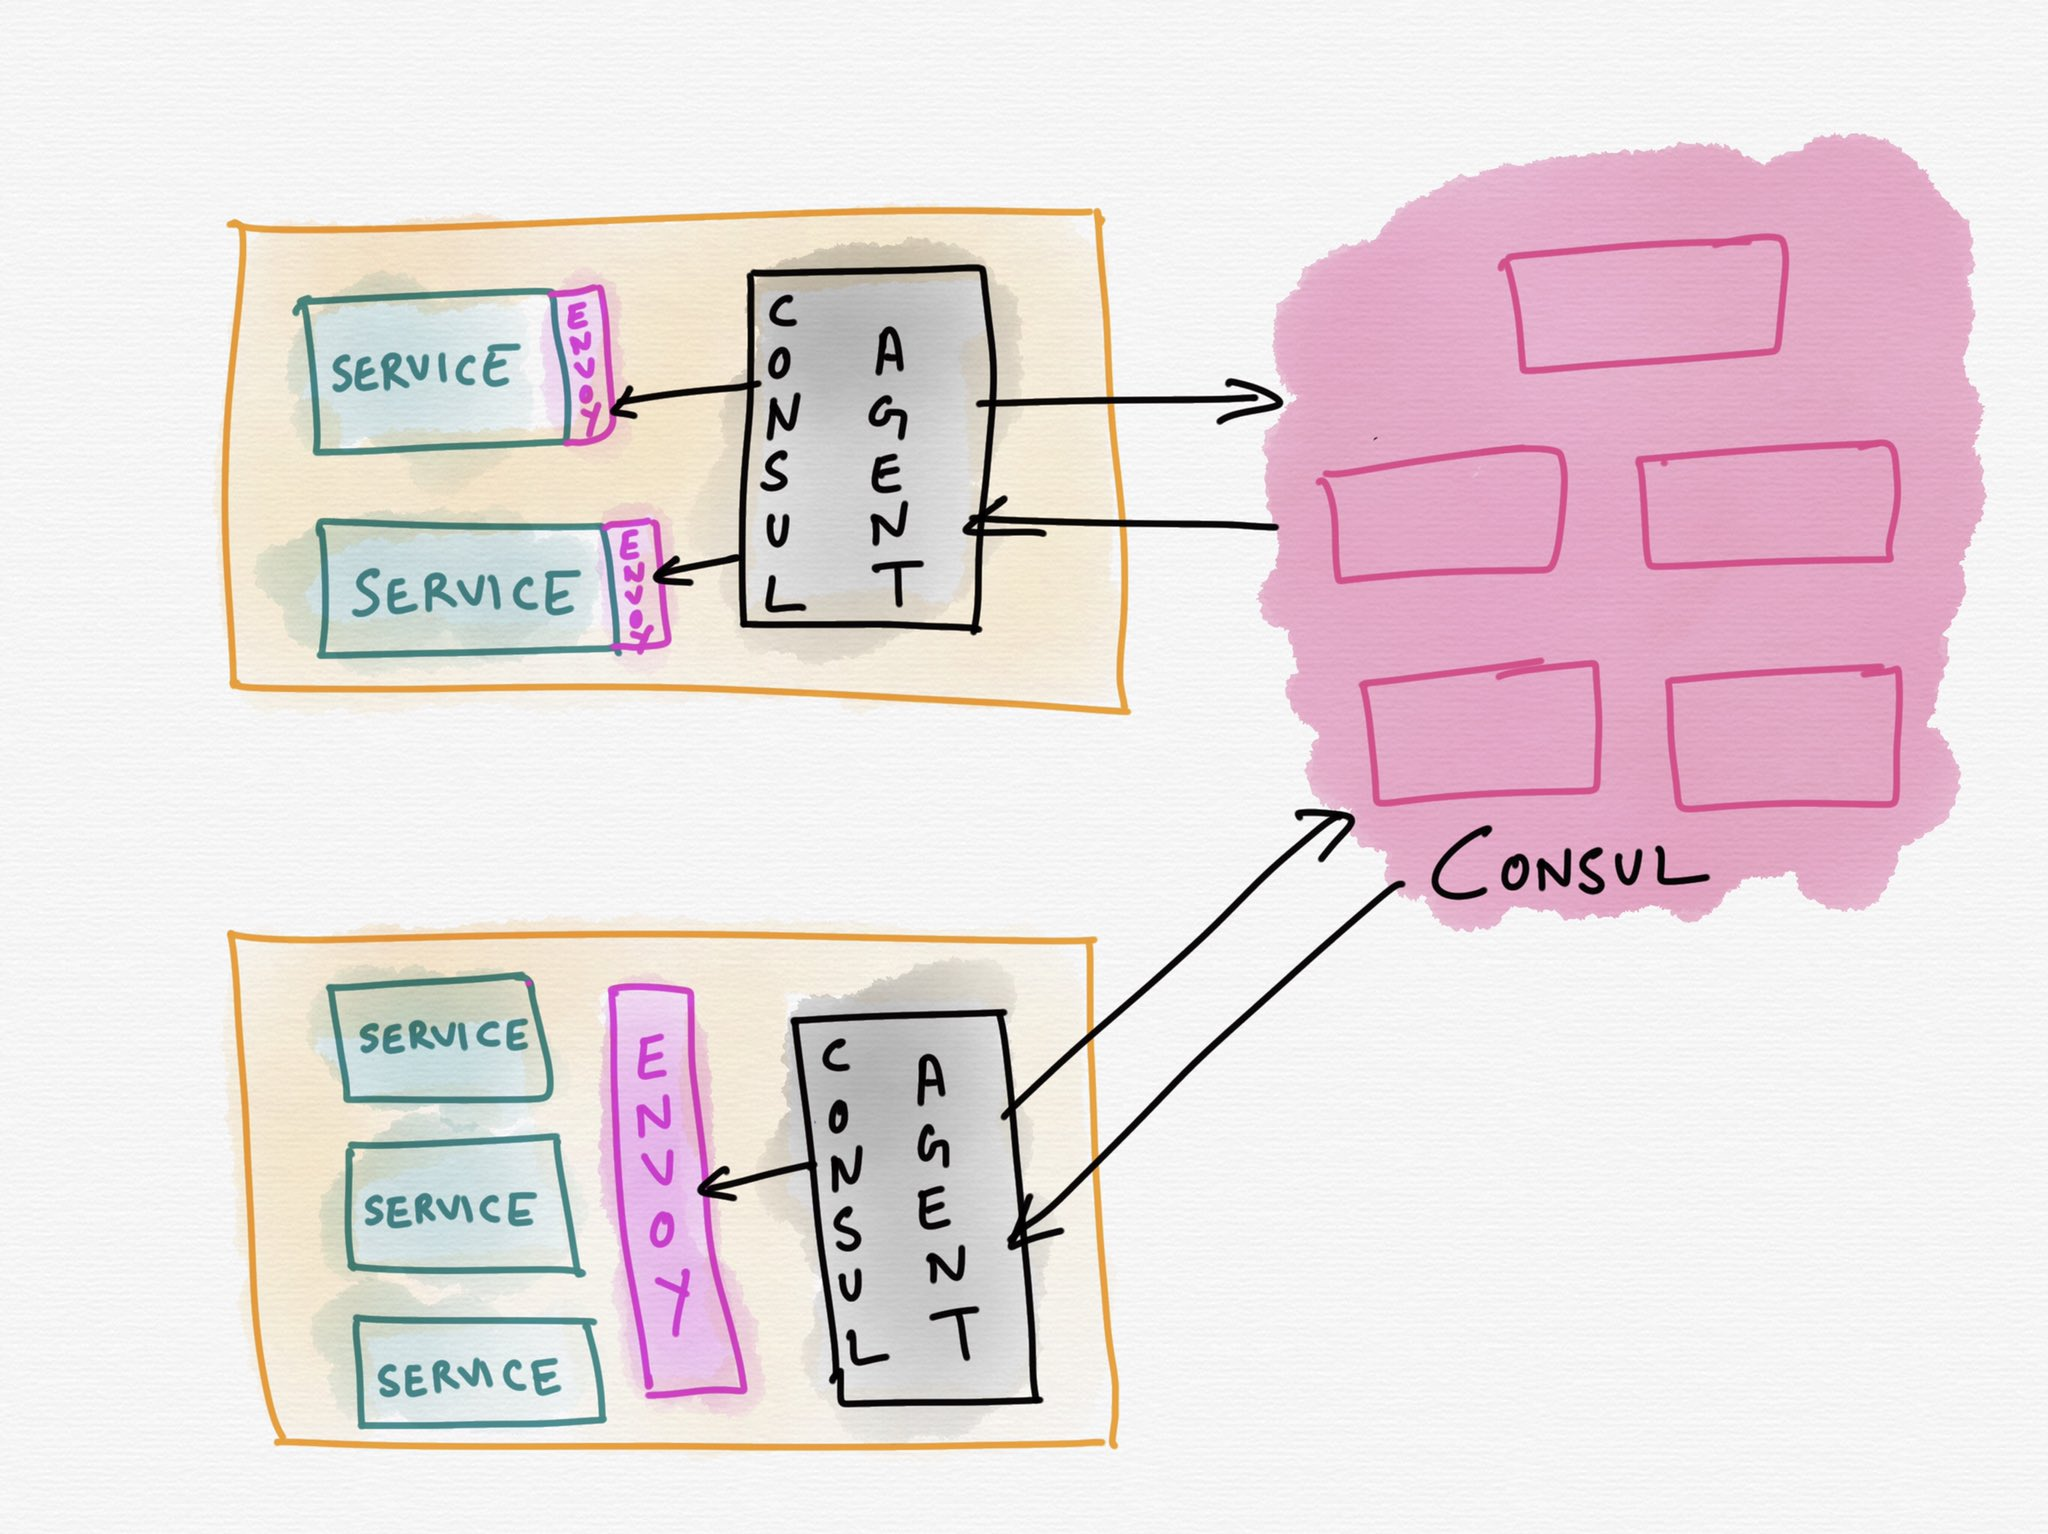 Rough sketch of Consul Service Mesh vs istio  1) istio looks much more complicated. Maybe in reality it isn't, but you wouldn't know just looking 2) the fewer the number of binaries to operate, the easier the operation story 3) self-explanatory naming of components really helps https://t.co/KHr0ZlrzKq